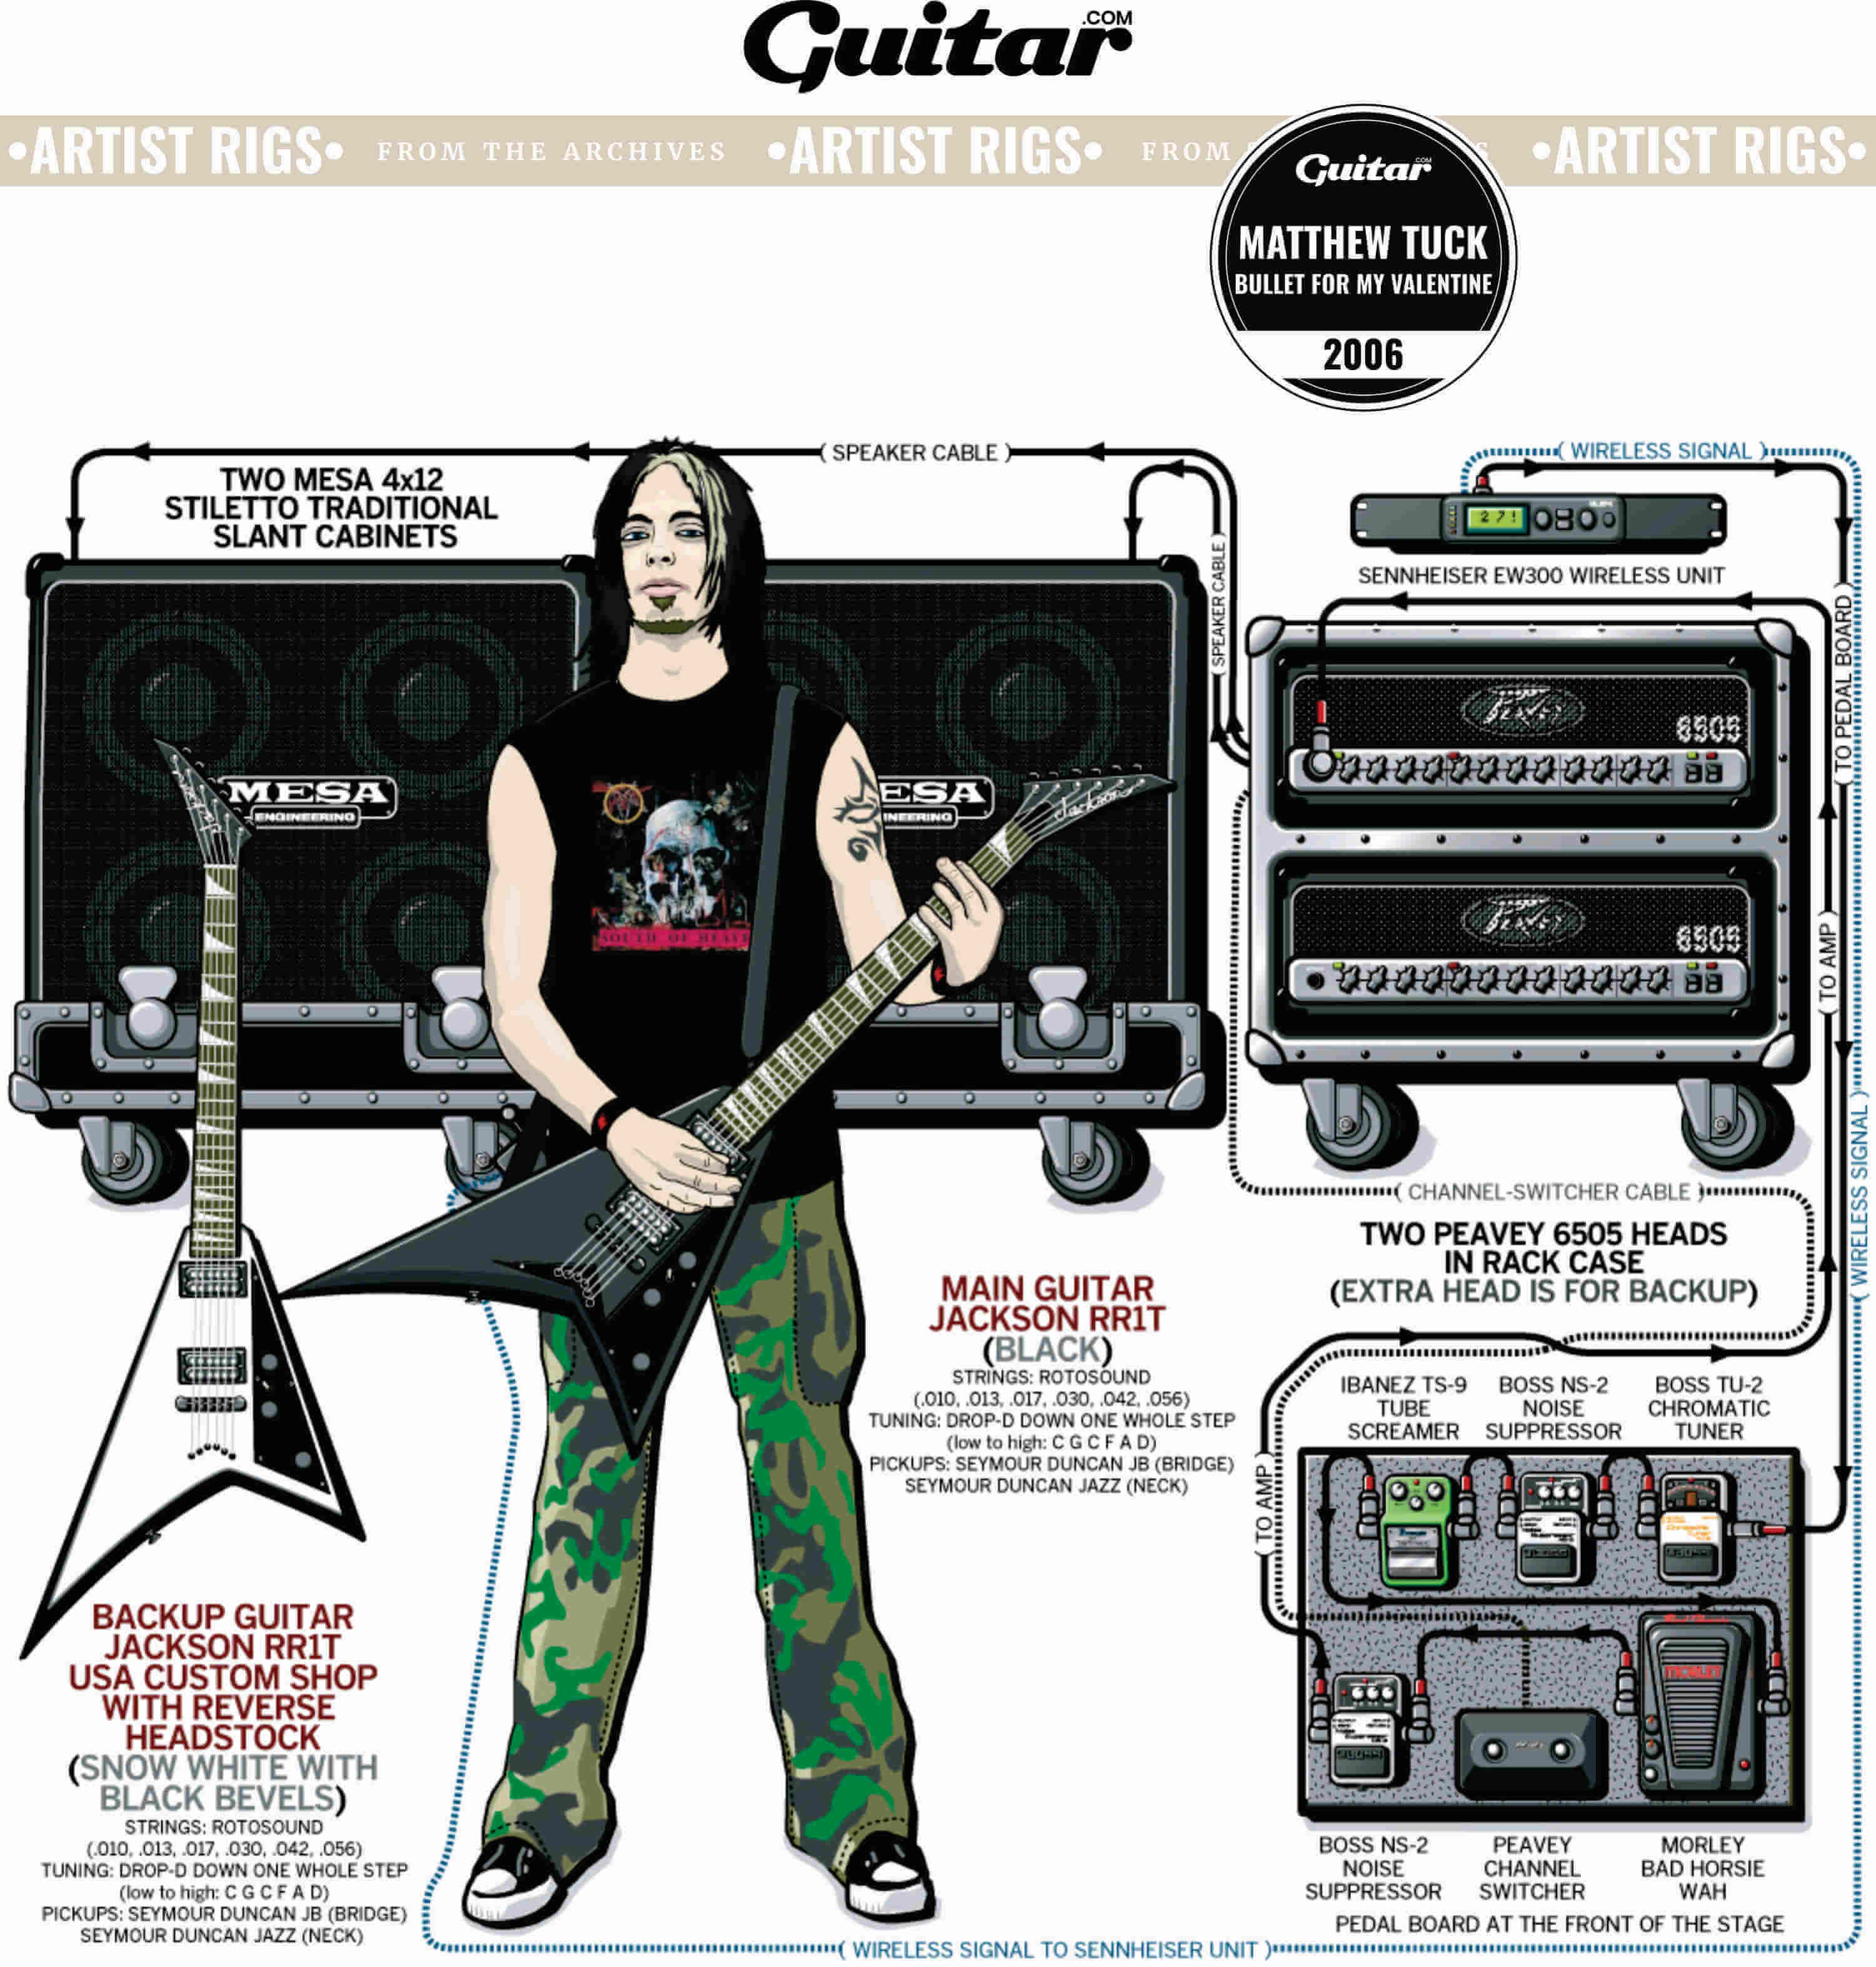 Rig Diagram: Matthew Tuck, Bullet For My Valentine (2006)